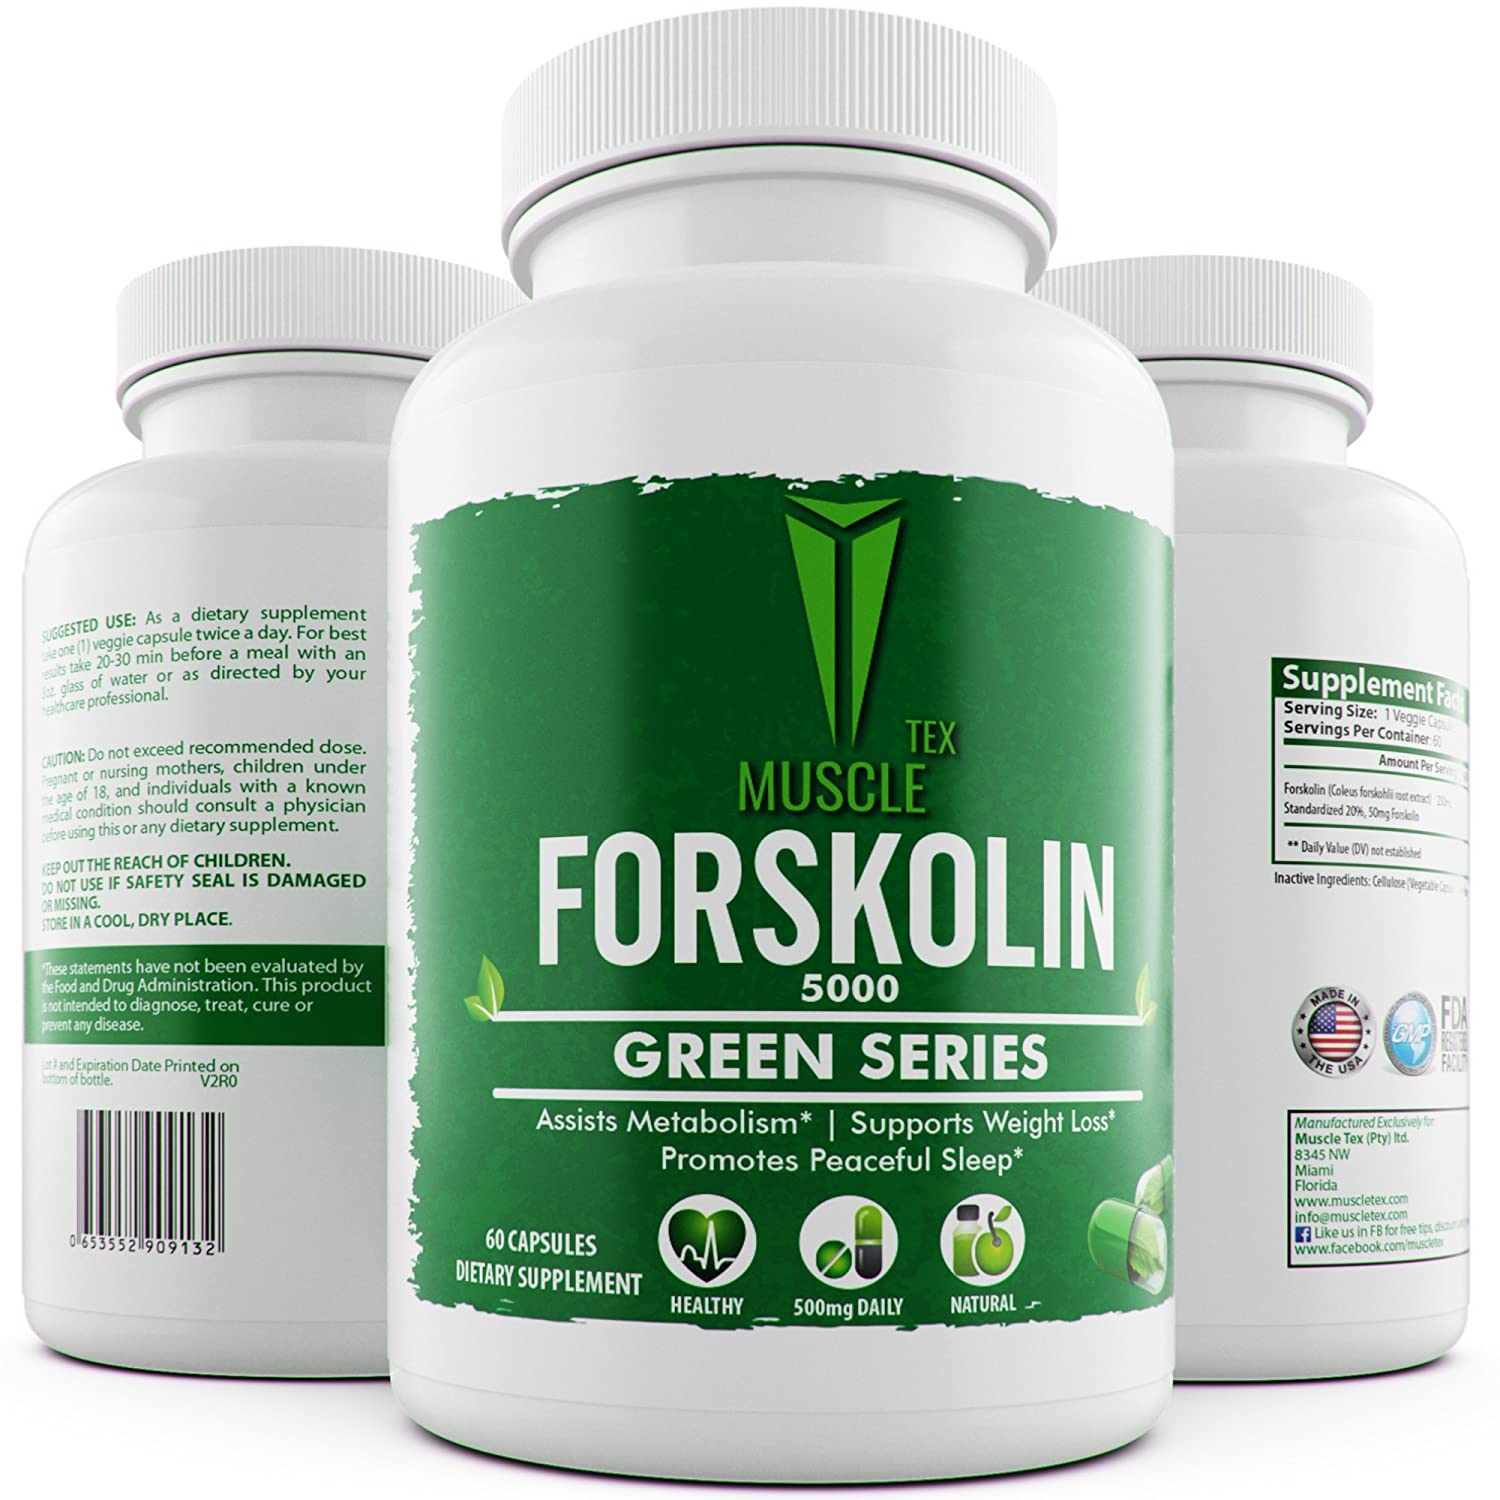 __MUSCLE TEX FORSKOLIN 5000__ – PURE Active Forskolin For Weight Loss – 500mg DAILY -250 Per Cap – Forskolin Extract – Carb Blocker - Green Series - Natural Weight Loss